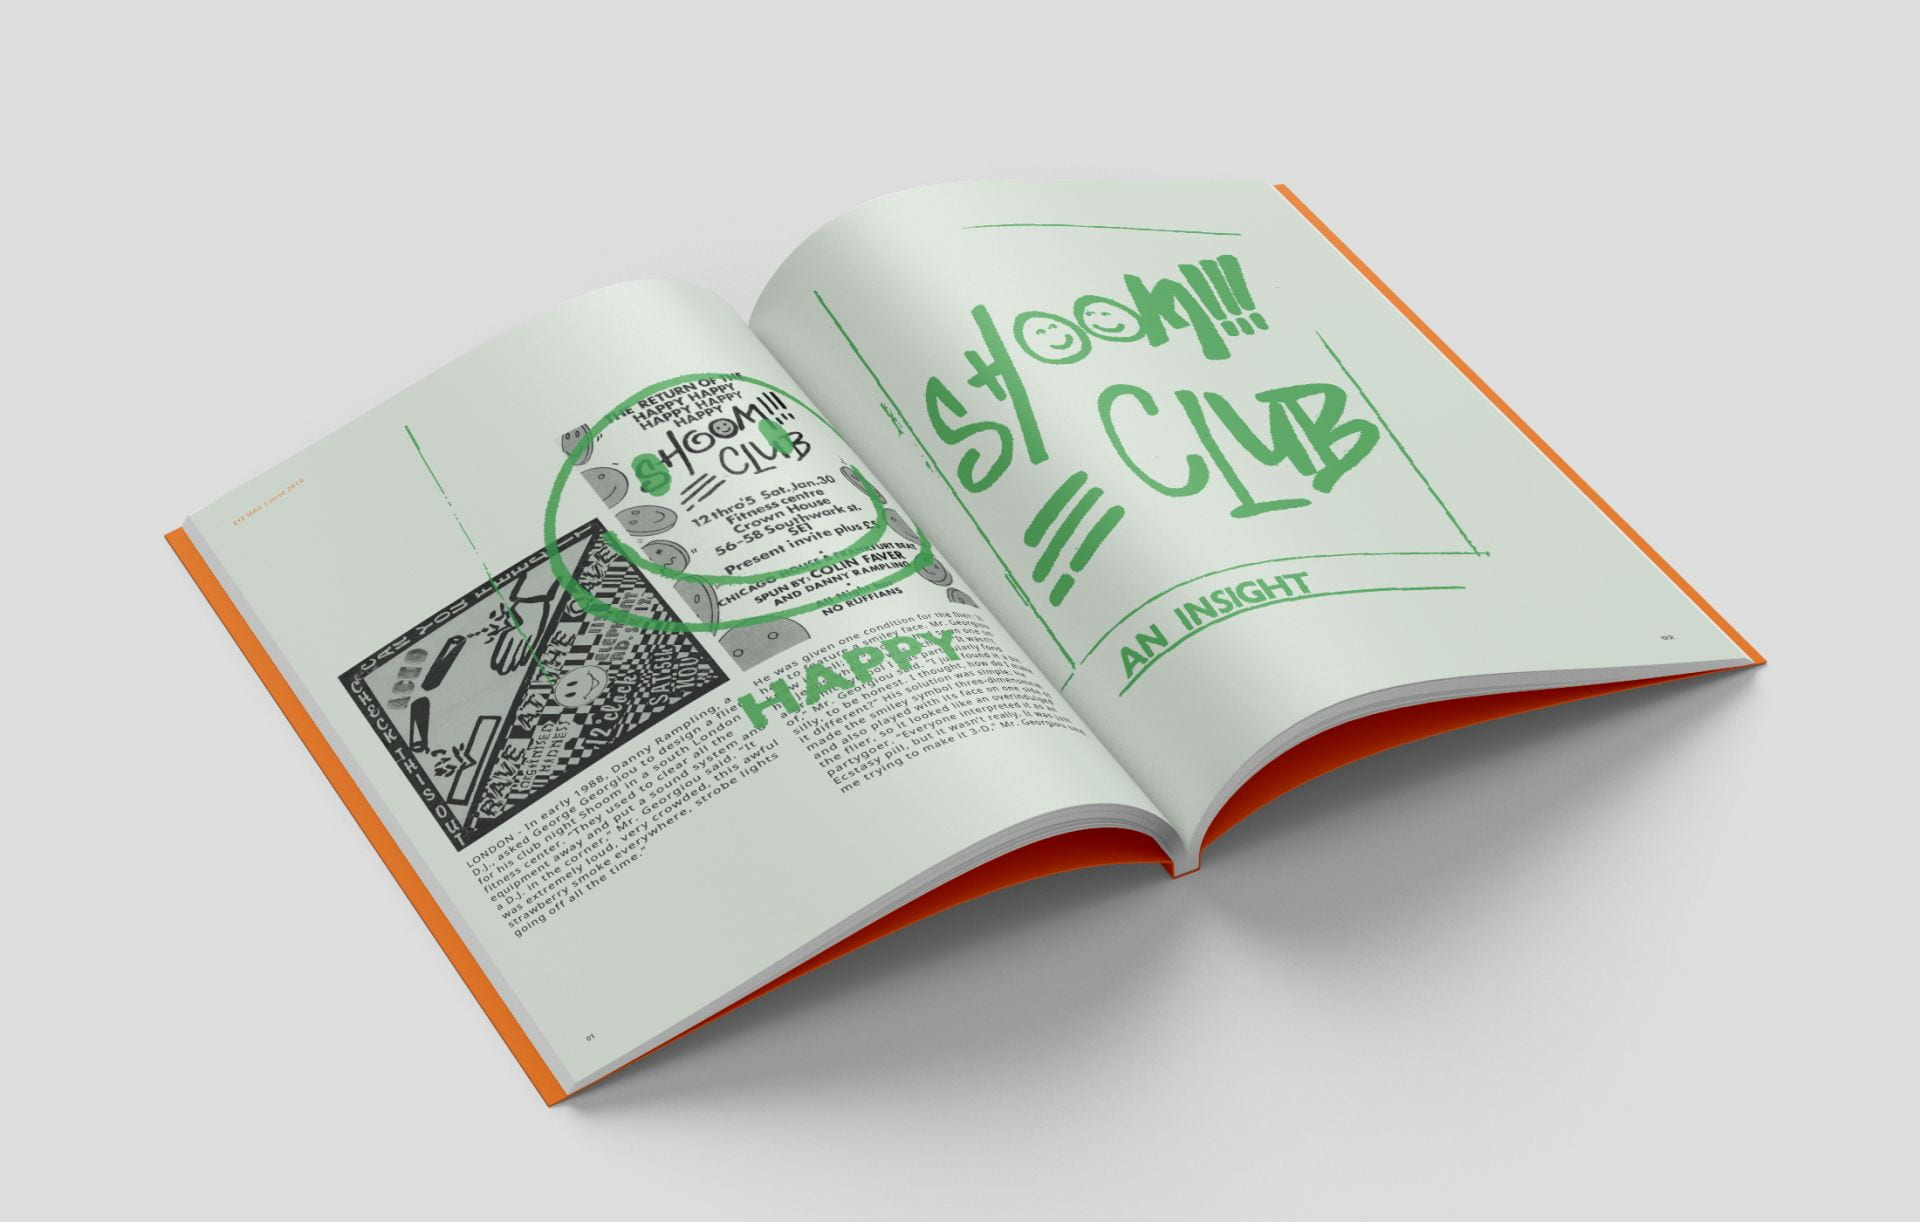 Image of a spread within the magazine, focusing on Shoom Club.